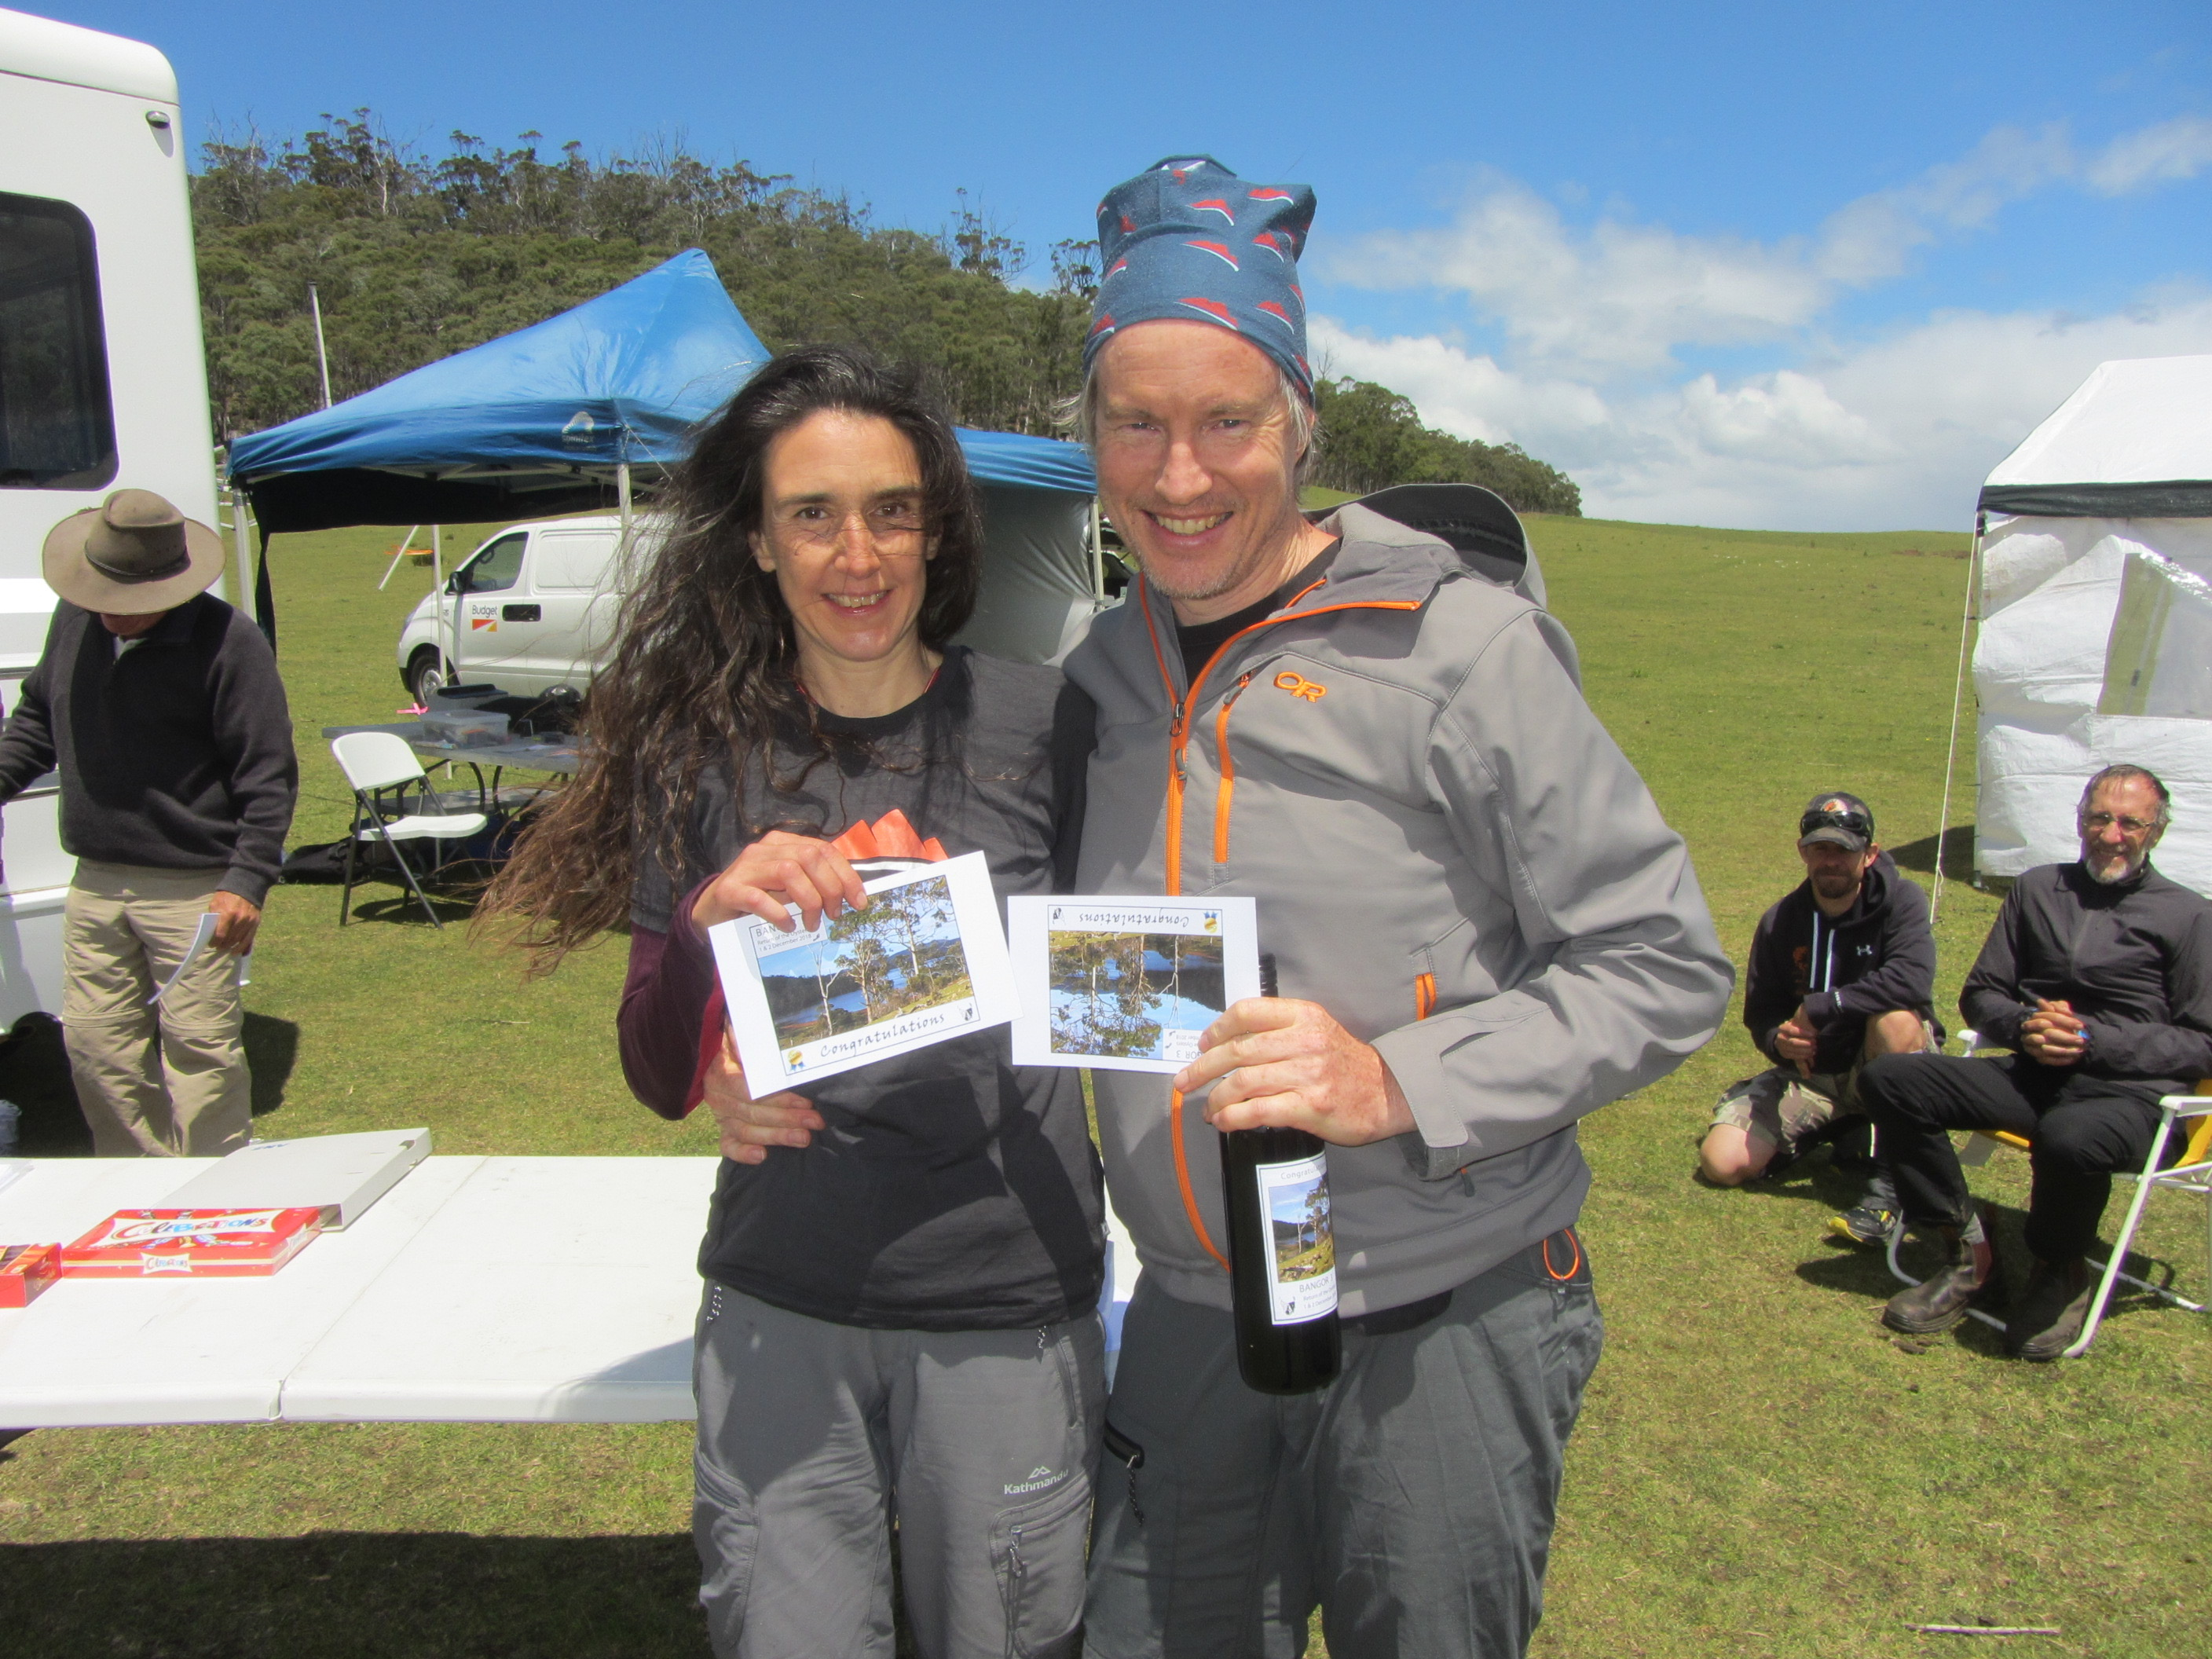 24hr event winners Toni Bachvarova and Andrew Smith